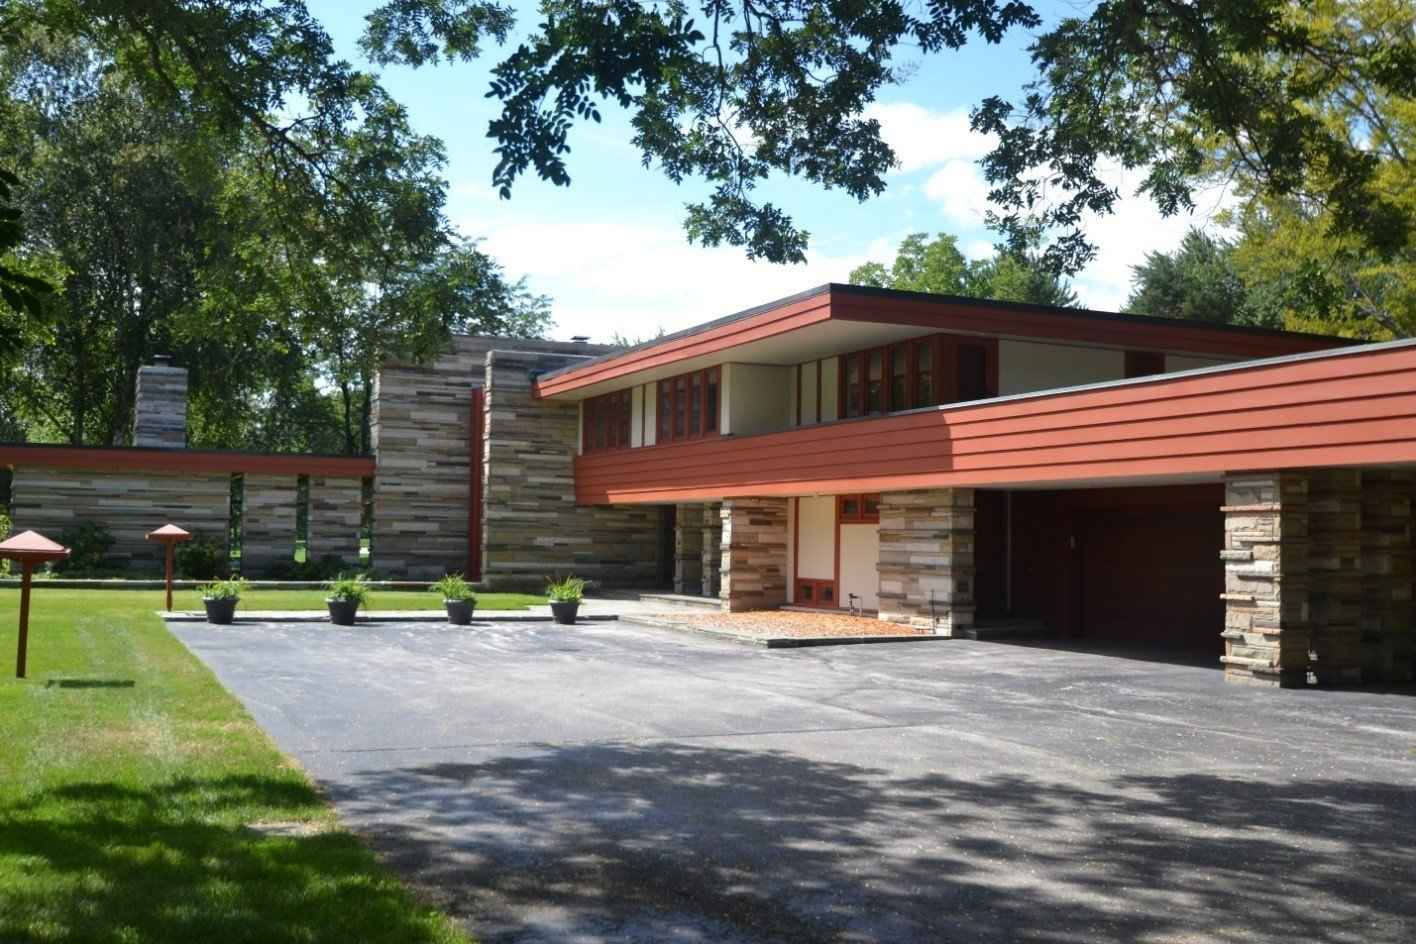 Glenn Beach's 1956 Gilbert Currie House is characteristic of the midcentury modern style with its streamlined, texture-rich exterior.